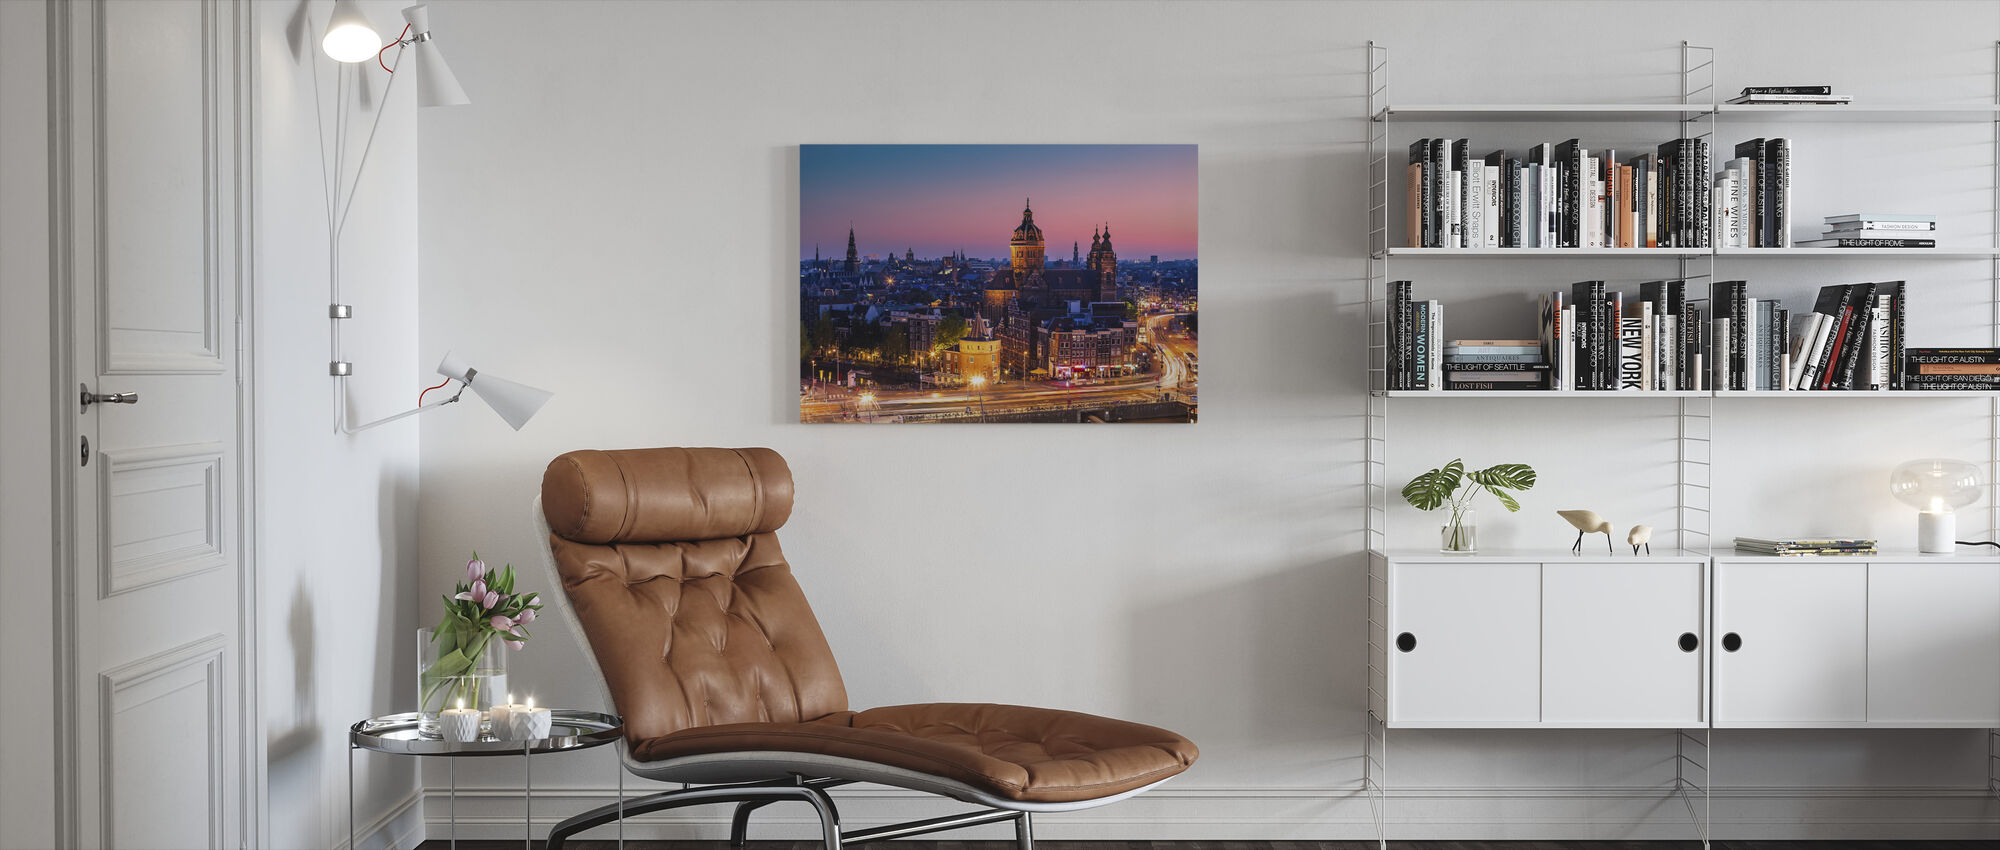 Amsterdam Stad - Canvas print - Woonkamer